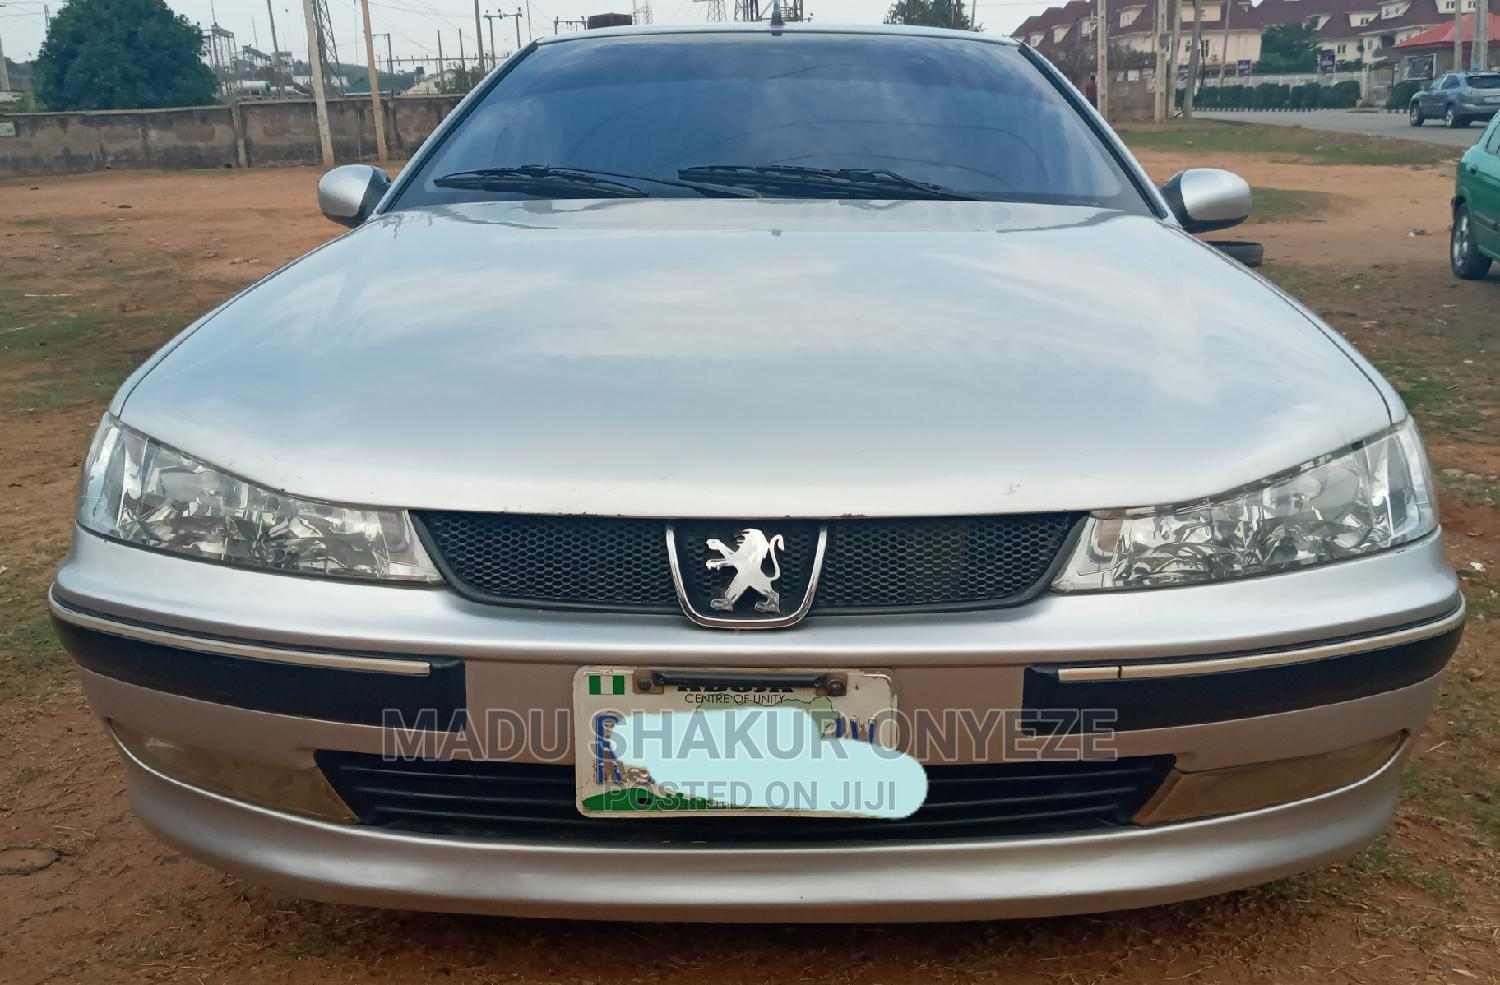 Archive: Peugeot 406 2004 2.0 HDi ST Silver